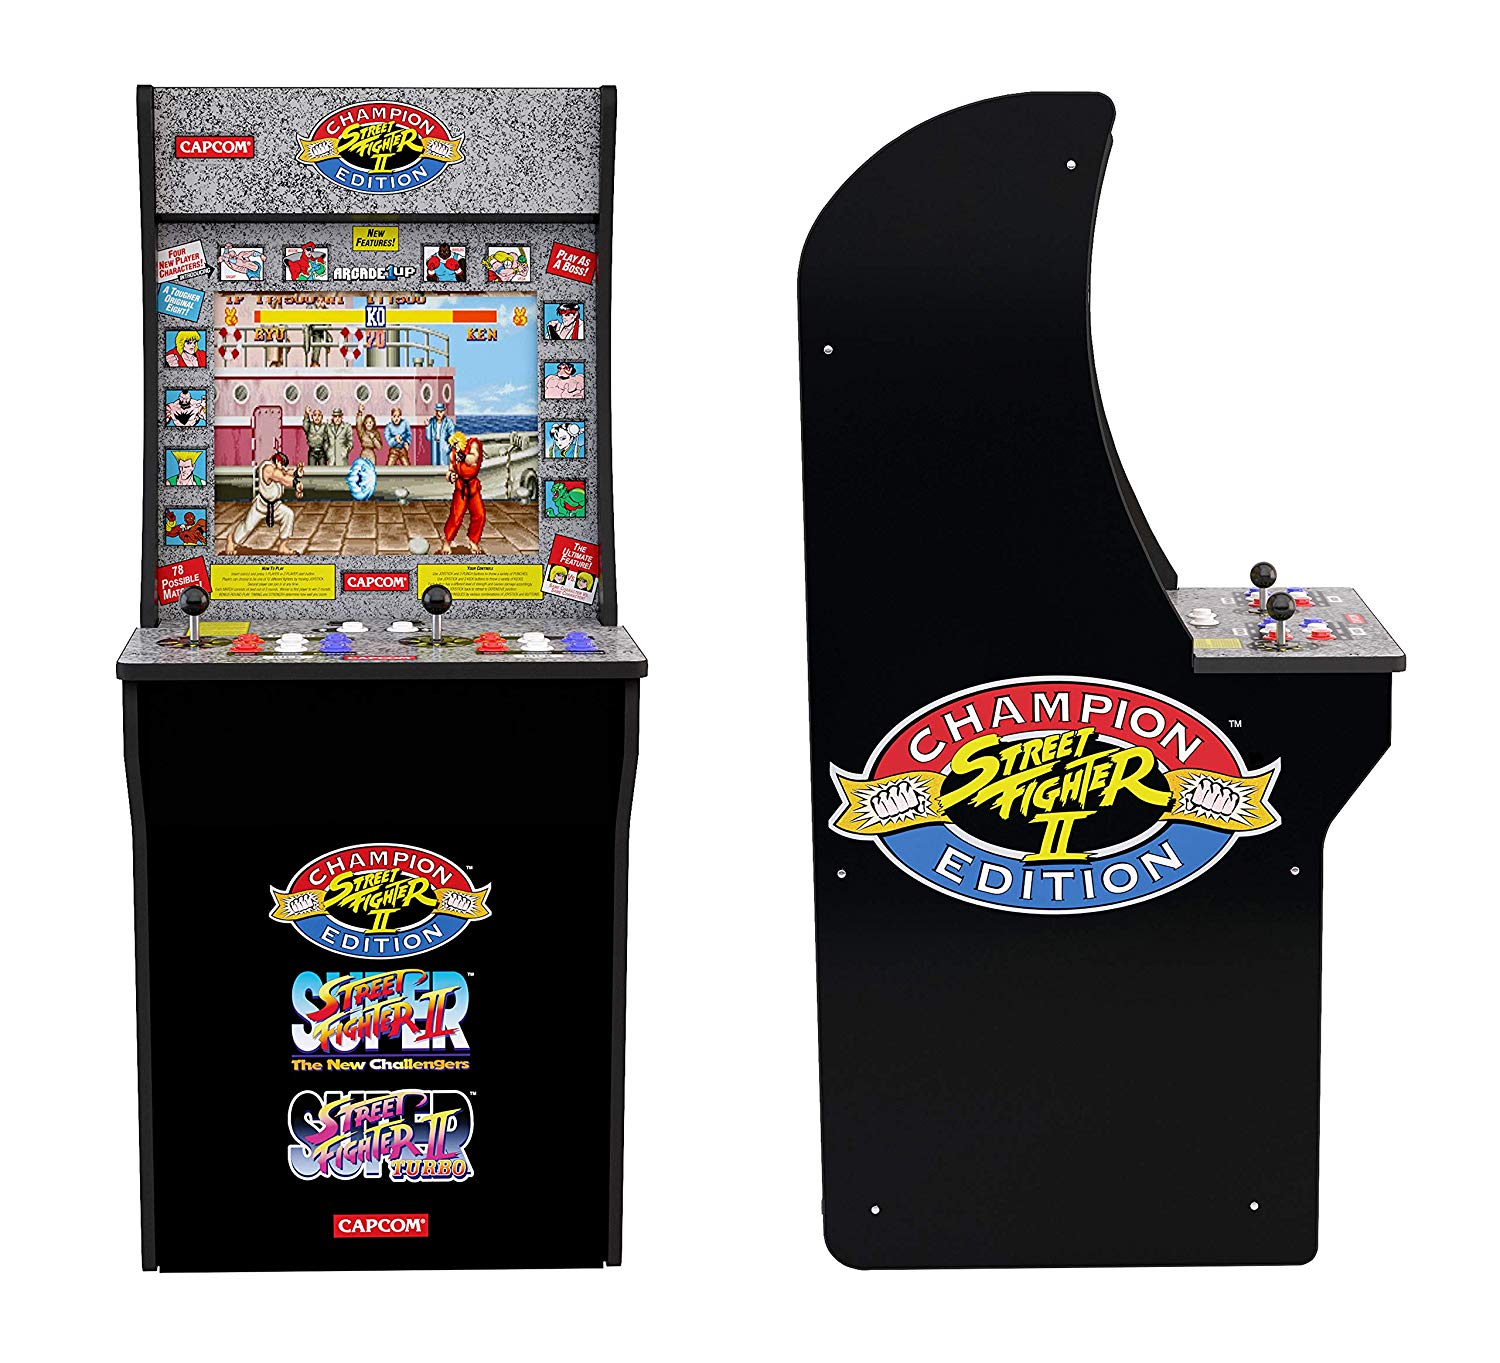 Street Fighter Classics 3-in-1 Home Arcade Cabinet   List Price: $300   Today's Price $187.50 — 37% off!    via Amazon